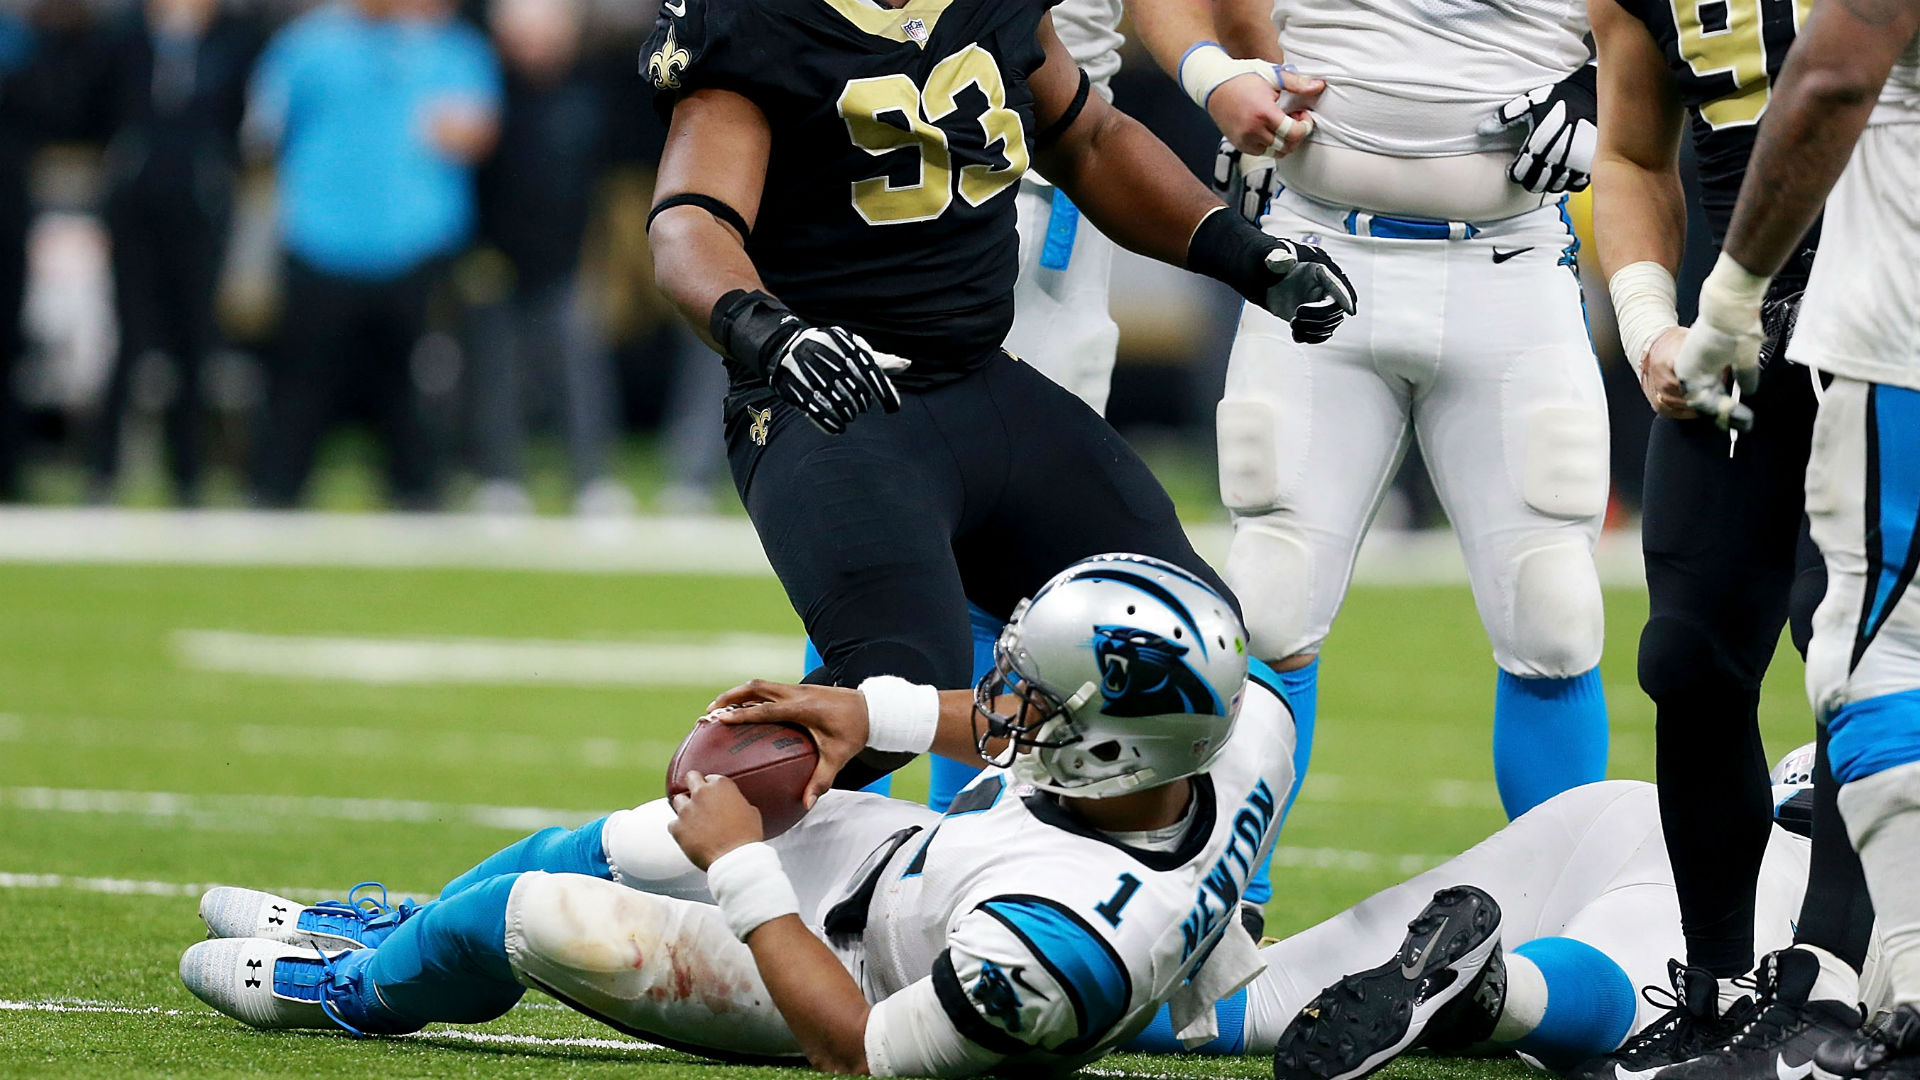 NFL officials to review if Panthers followed concussion protocol